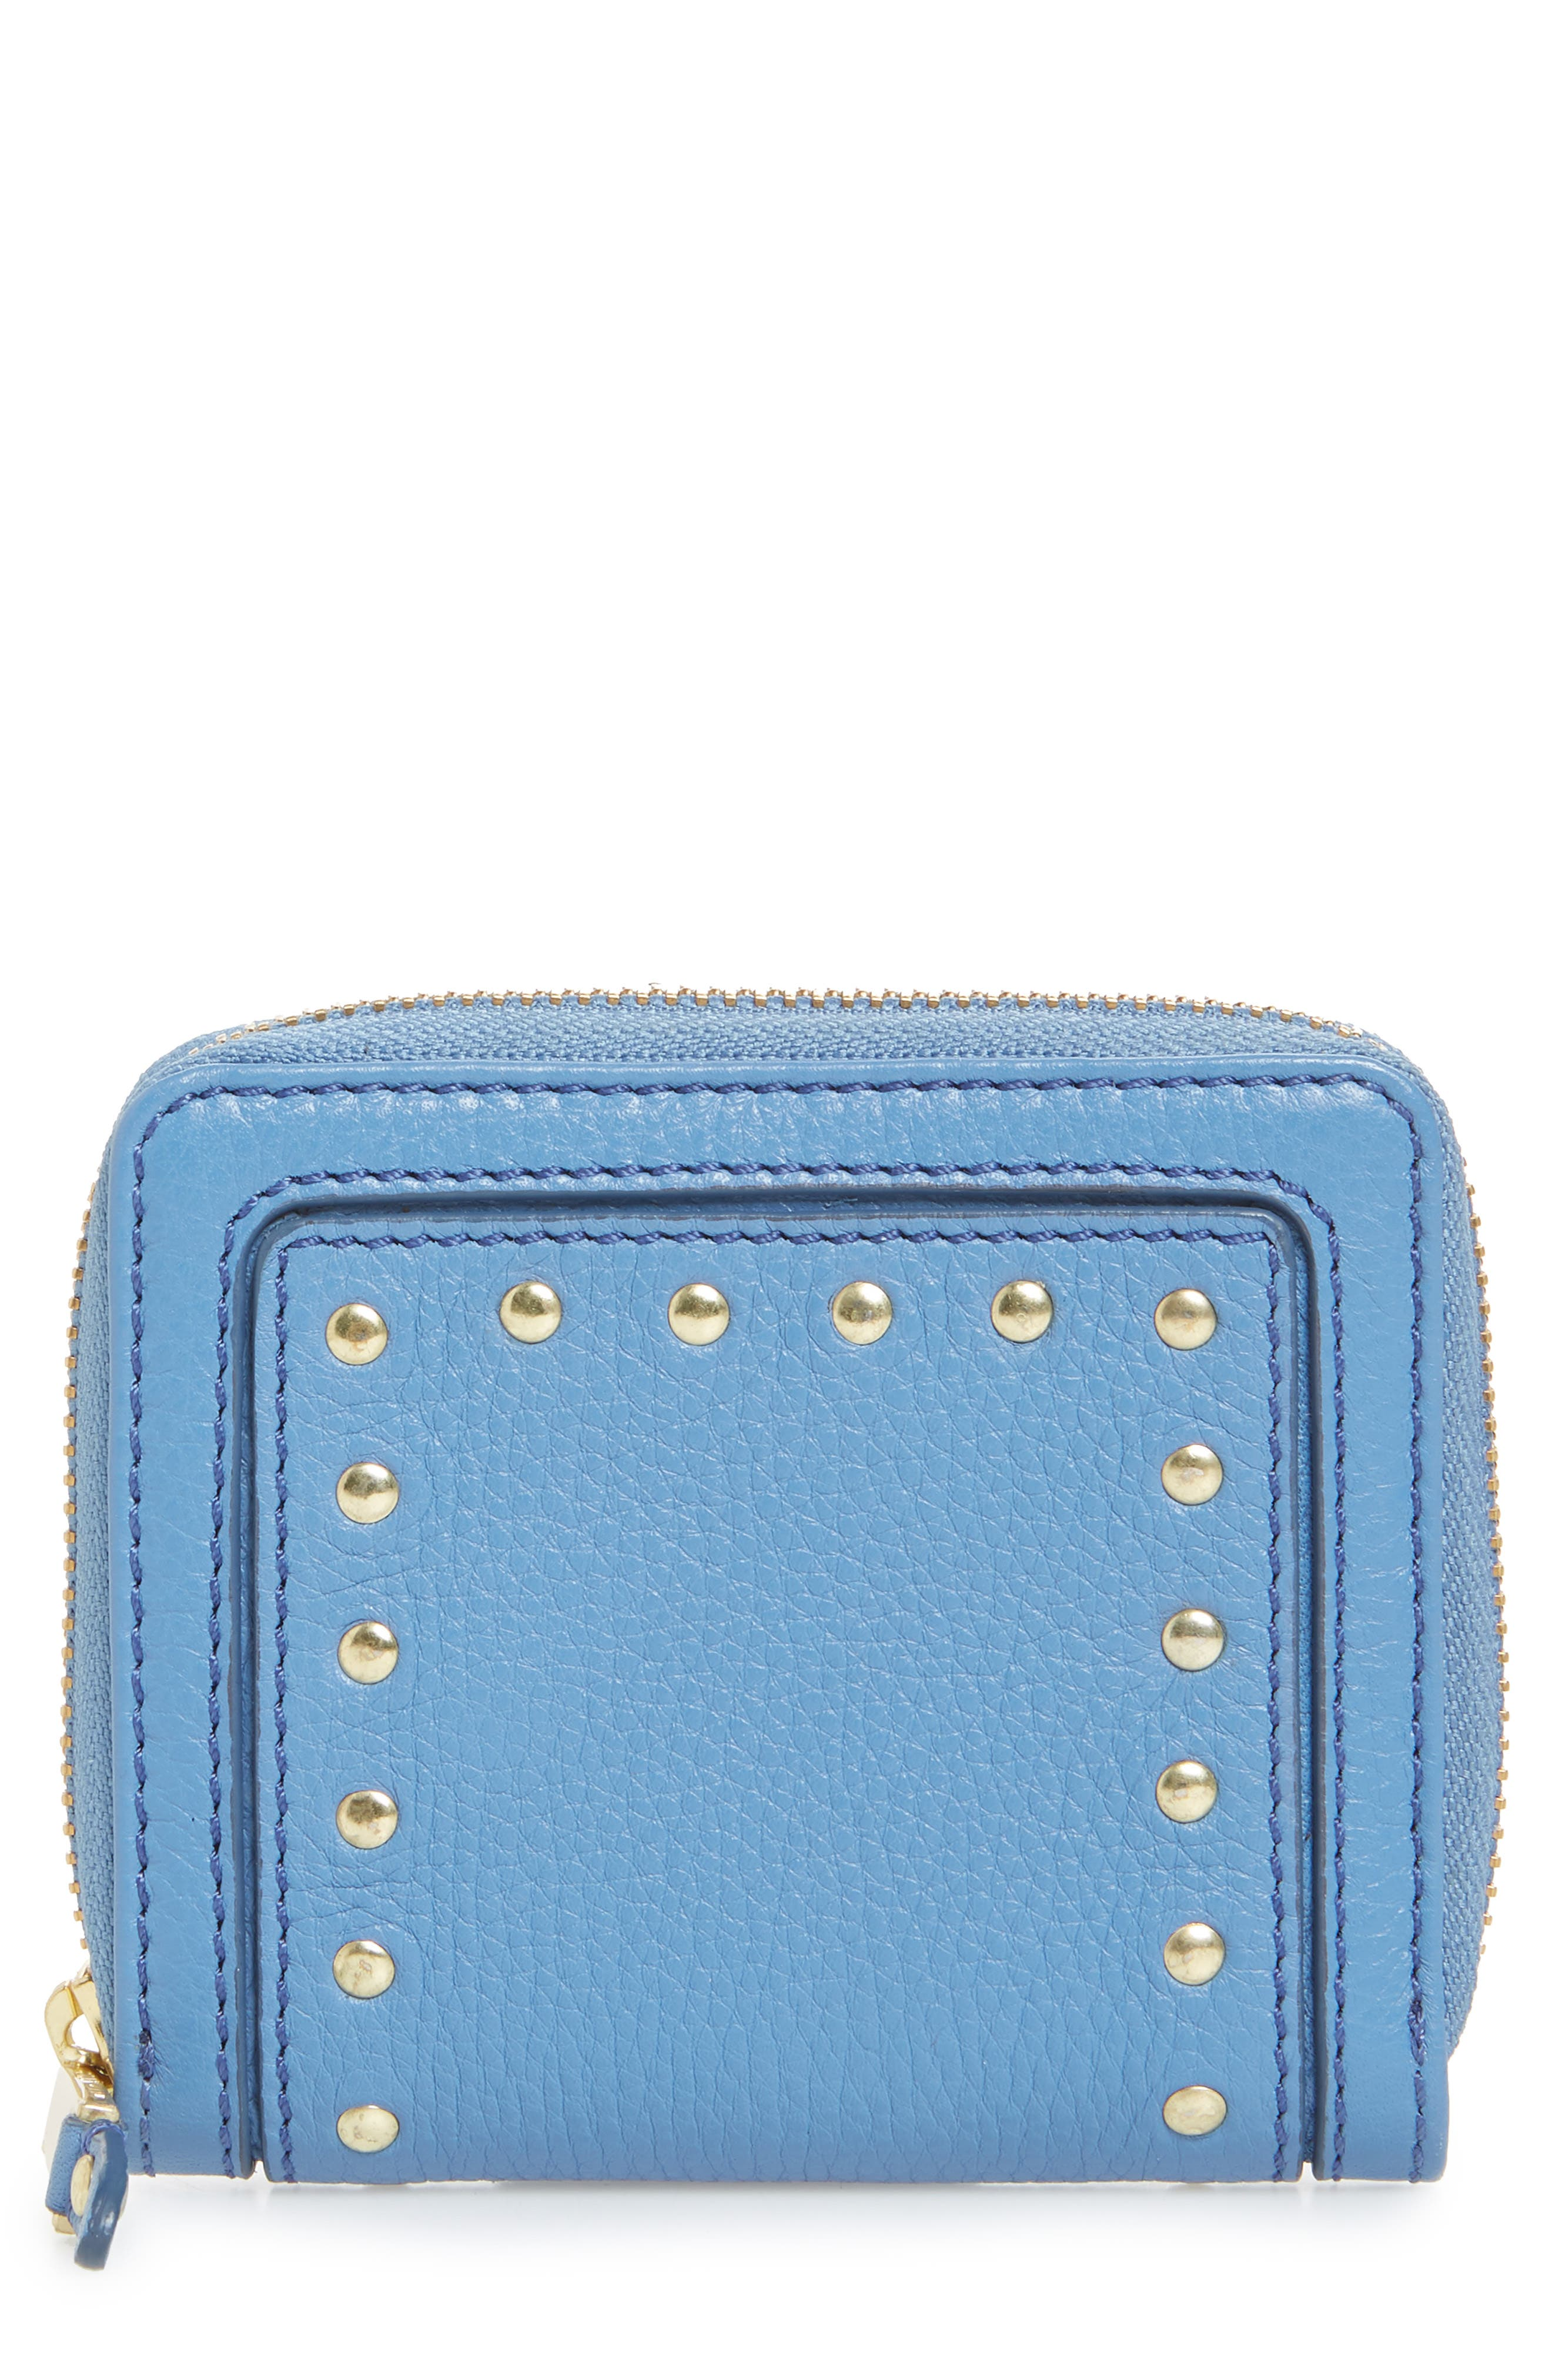 Cassidy Small RFID Leather Zip Wallet,                             Main thumbnail 1, color,                             Riverside